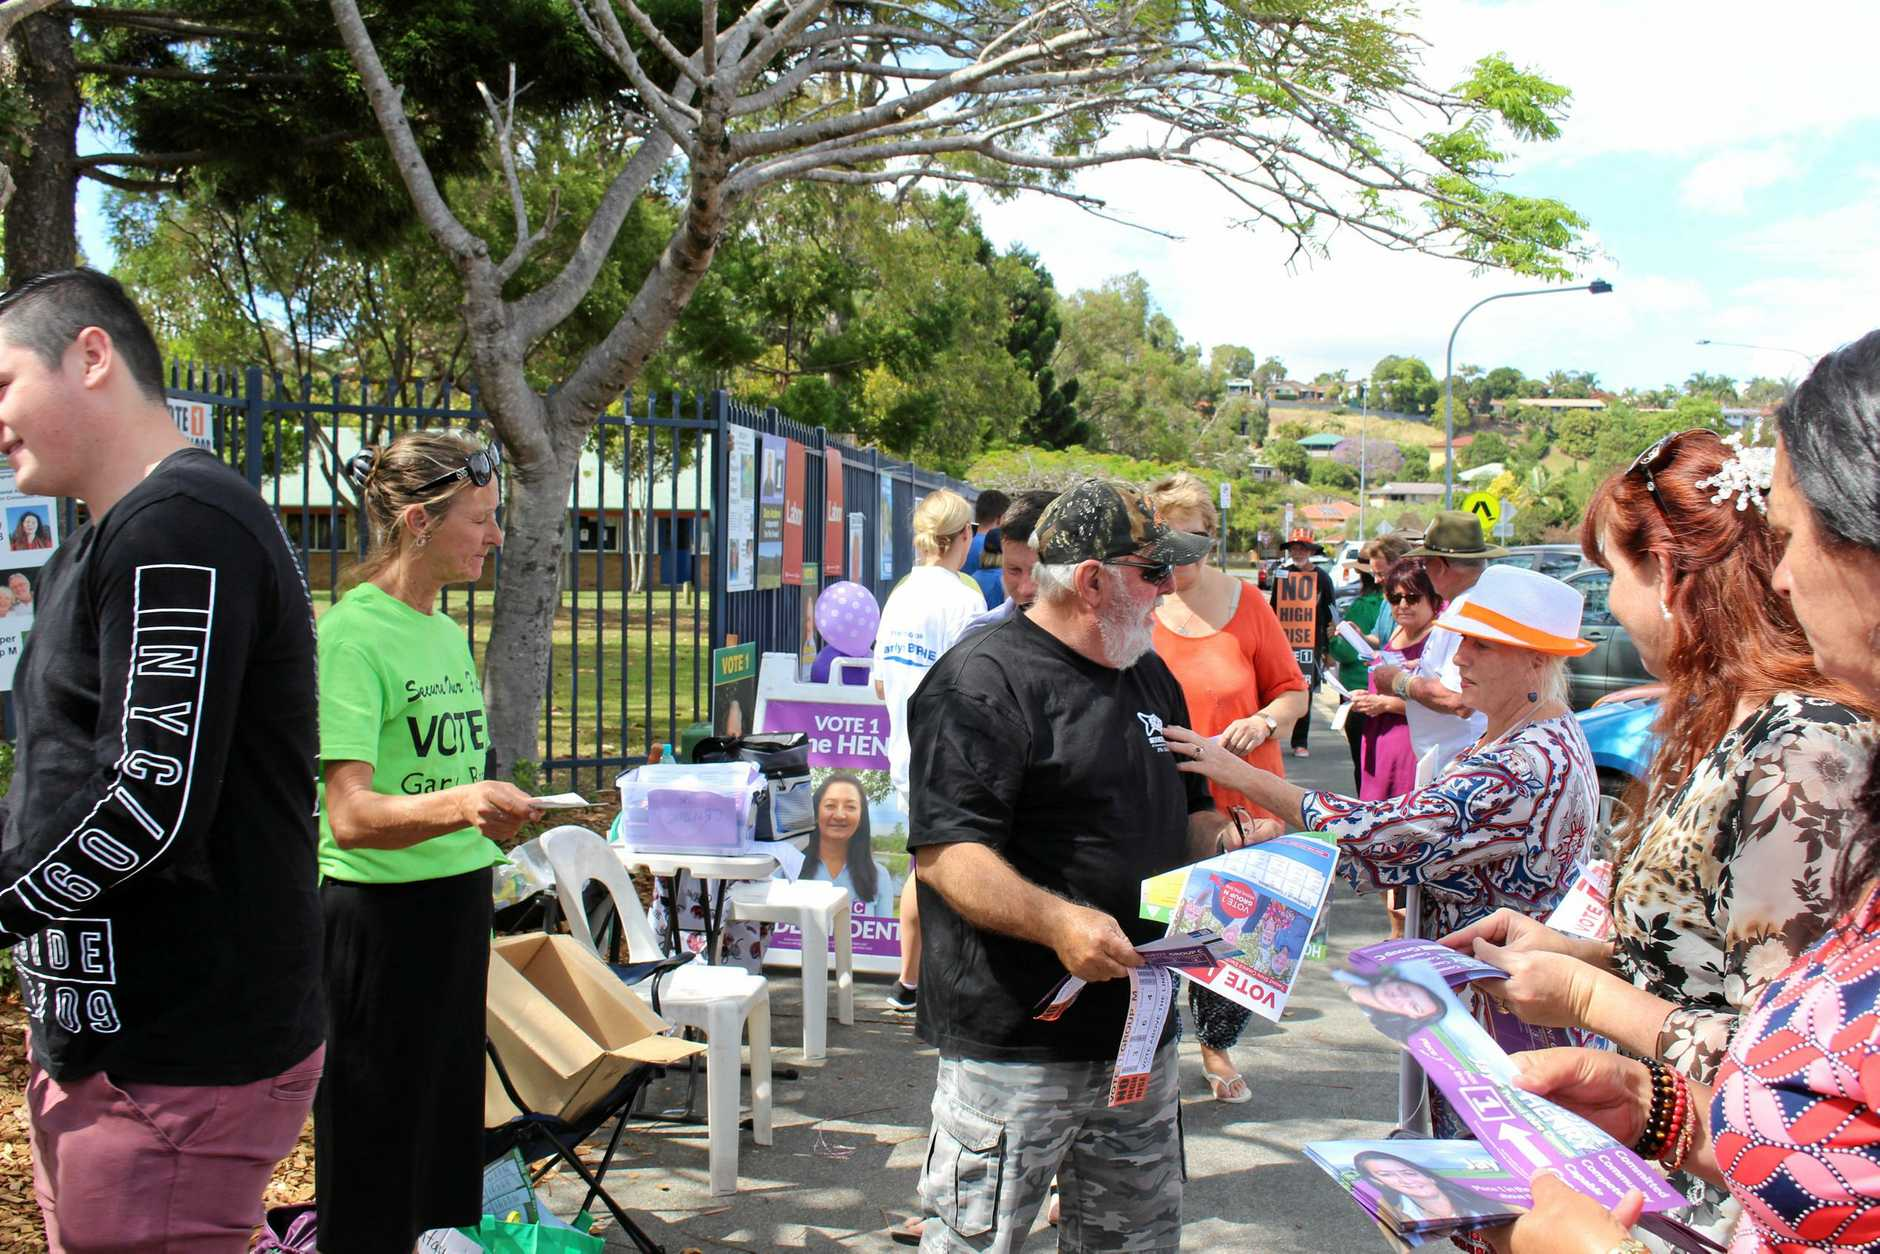 ELECTION DAY: Tweed Shire Council candidates and their supporters handing out flyers to voters on election day at Centaur Primary School in 2016.